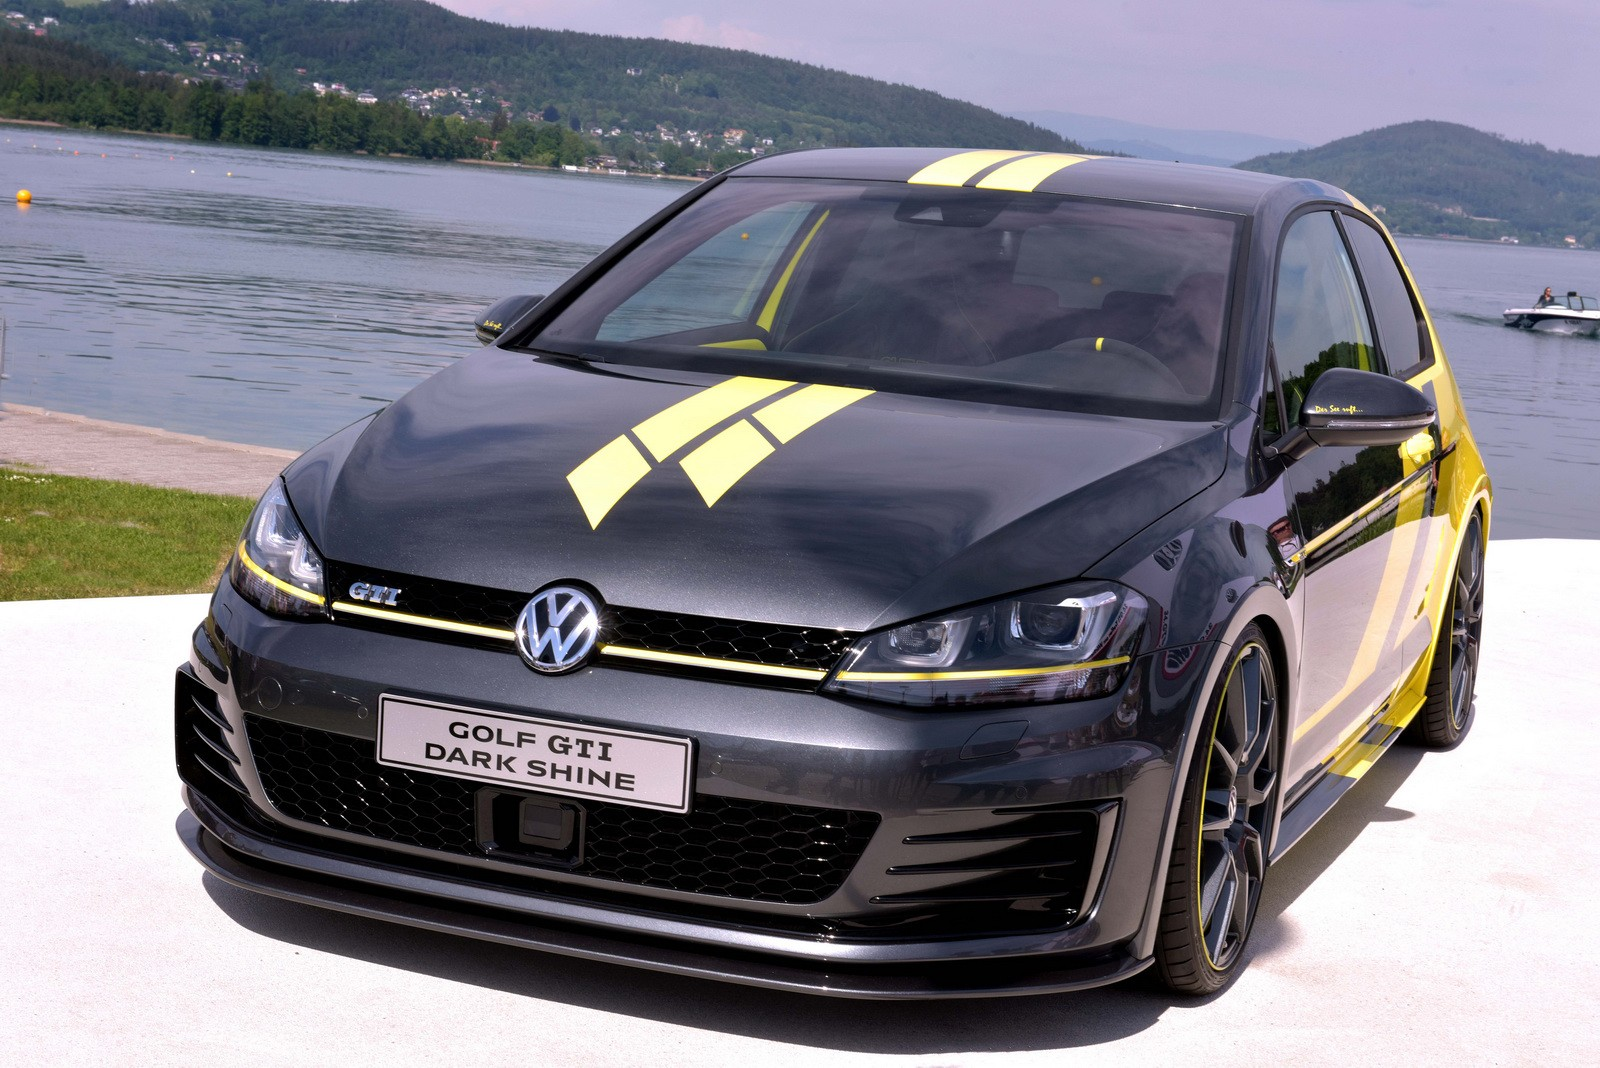 volkswagen-golf-gti-dark-shine-debuts-at-worthersee-2015-photo-gallery_3.jpg